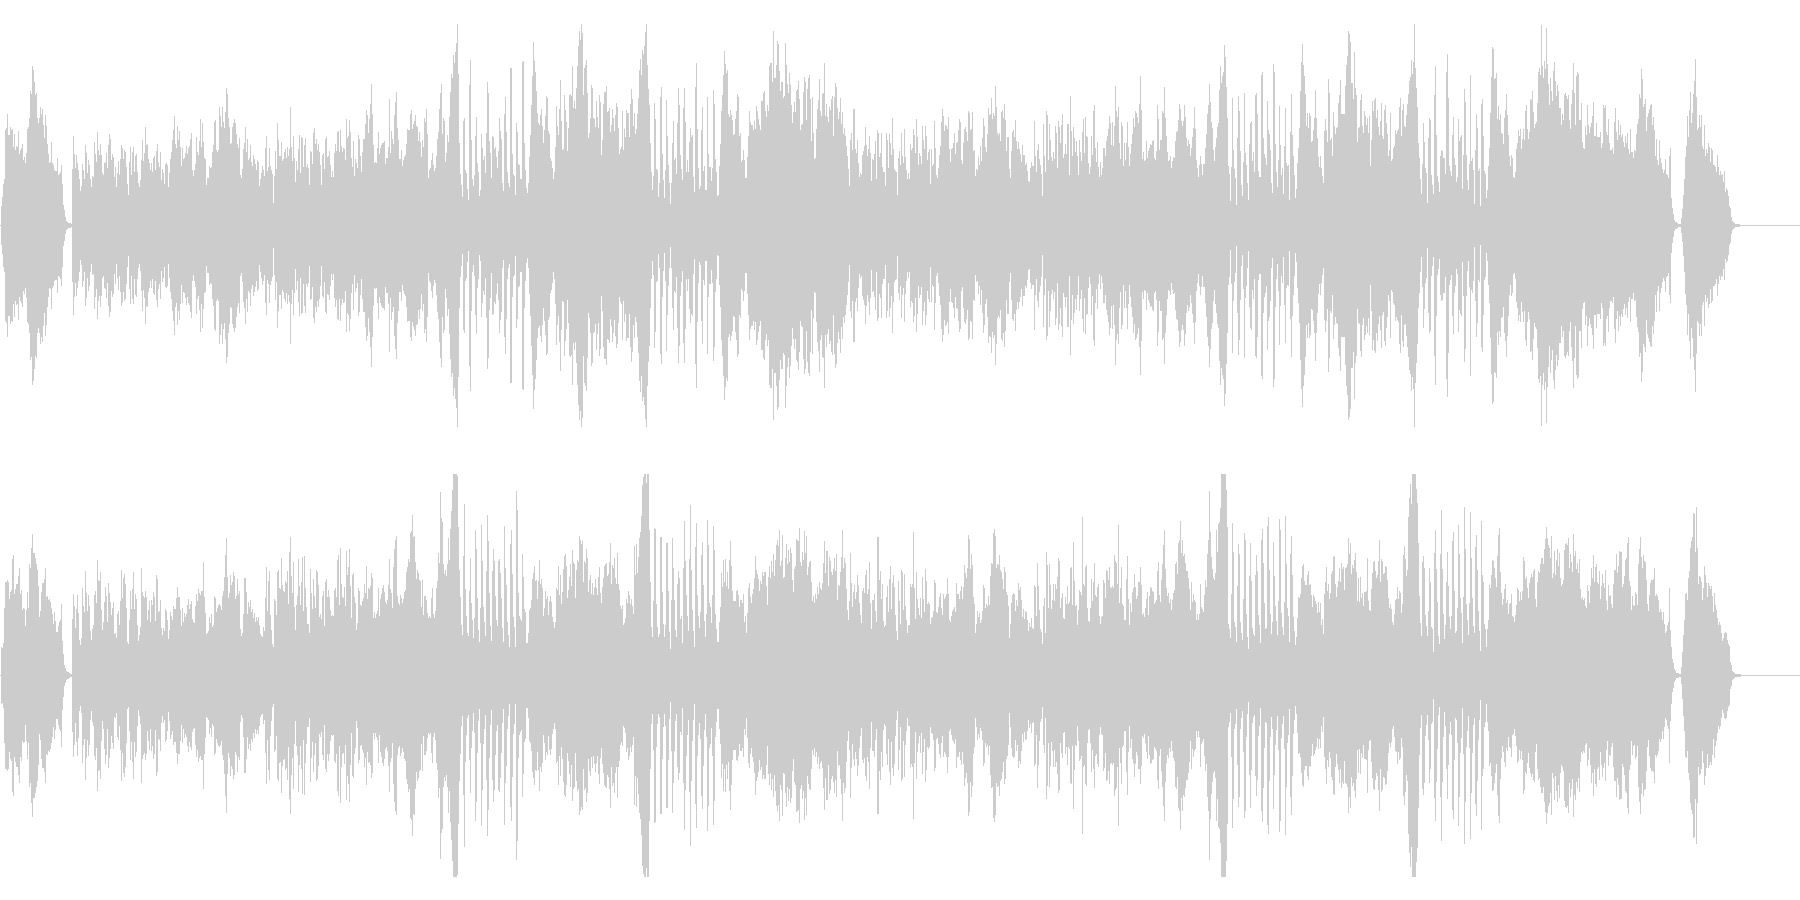 Orchestra Image of a fashionable city's unreproduced waveform